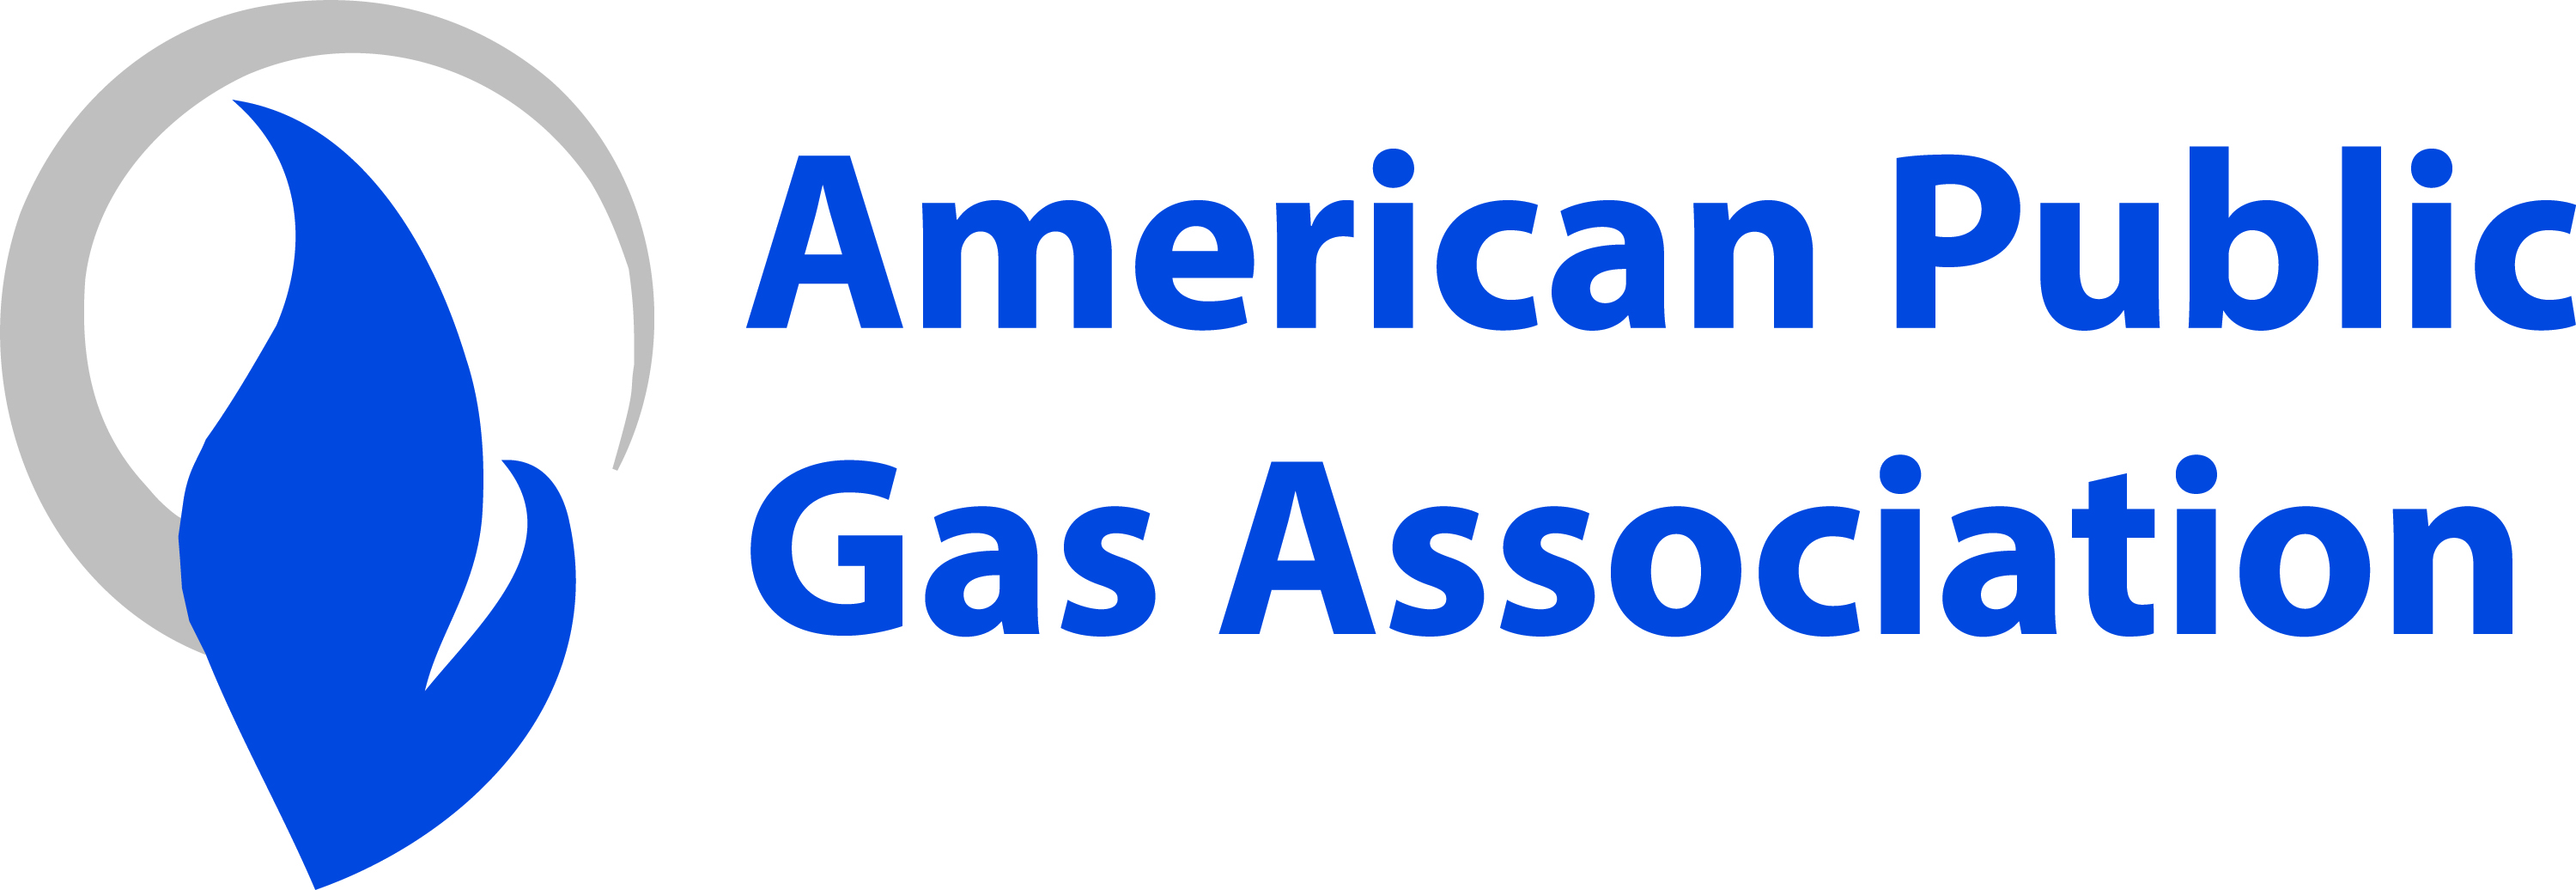 American Public Gas Association logo